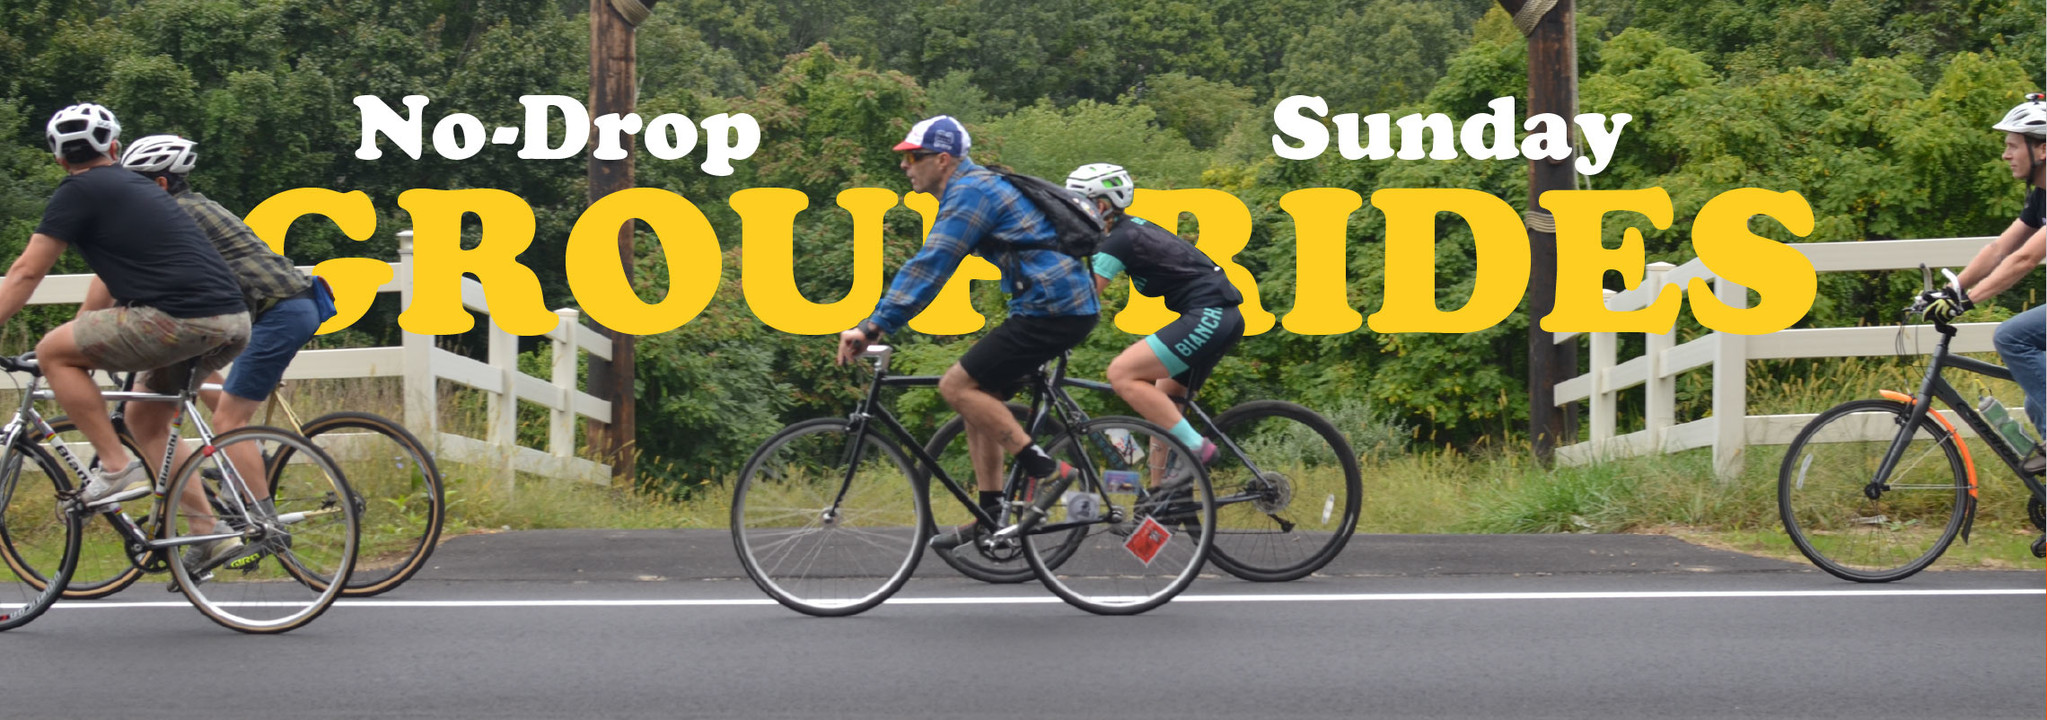 Join us for conversational-pace group rides Sunday afternoons